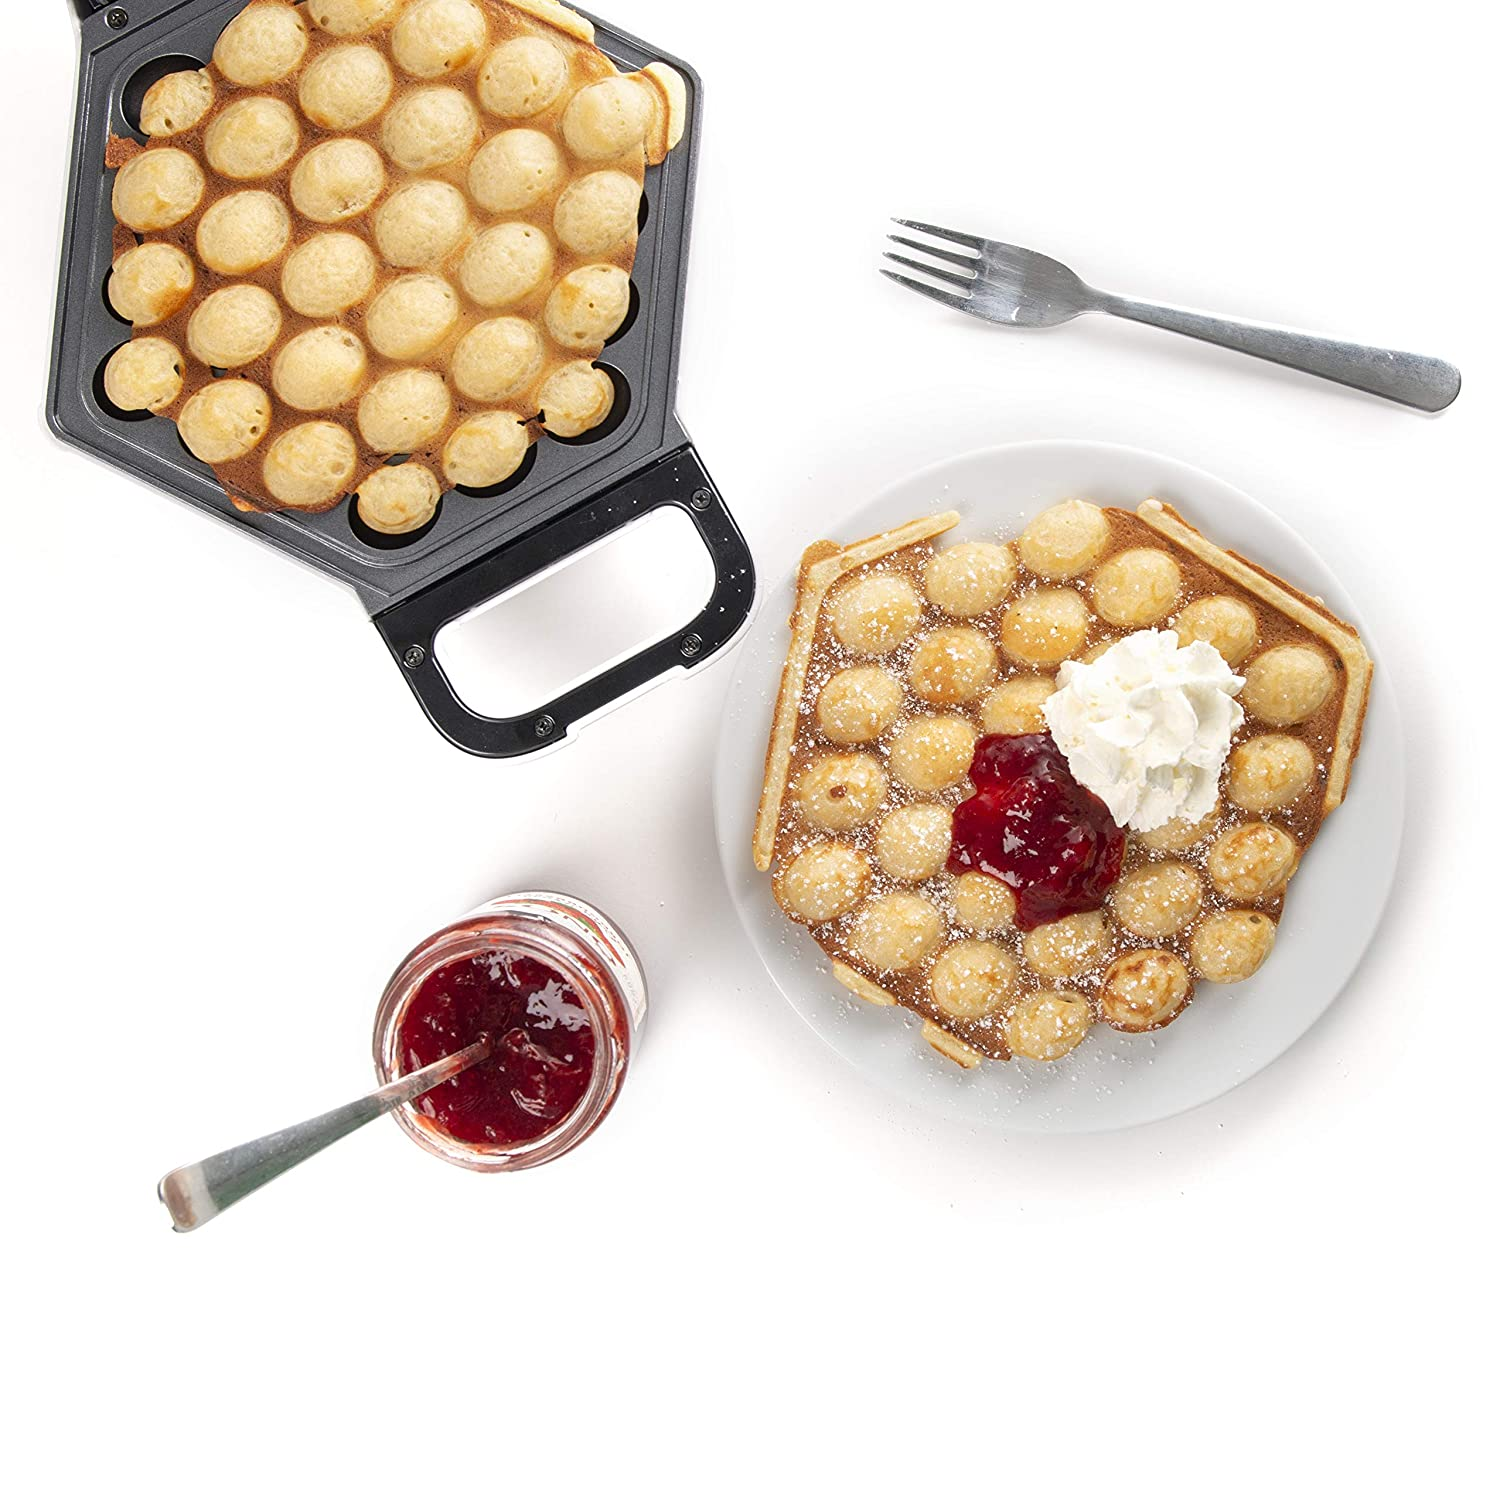 KitchPro Electric Bubble Waffle Maker for Bubble Waffles or Cones Hong Kong Waffle Style UK Plug